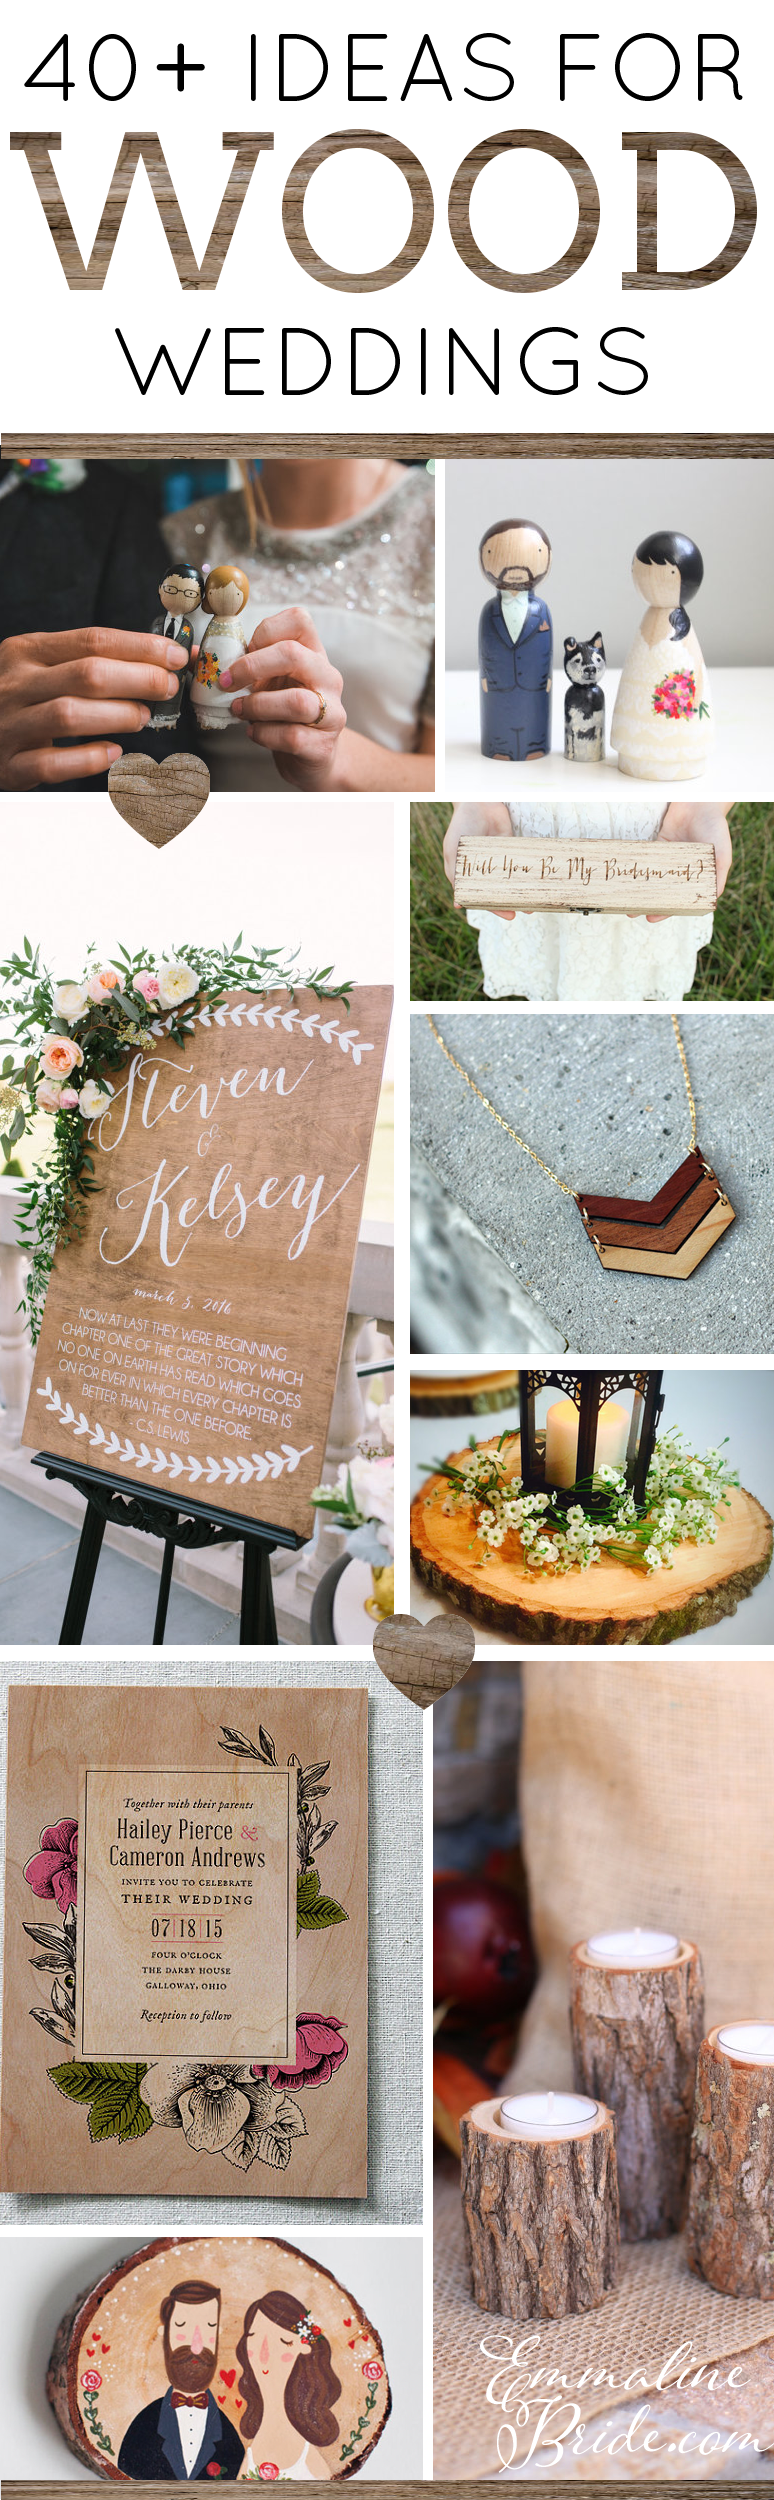 40+ Wood Themed Wedding Ideas by Emmaline Bride | https://emmalinebride.com/themes/wood-themed-wedding-ideas/